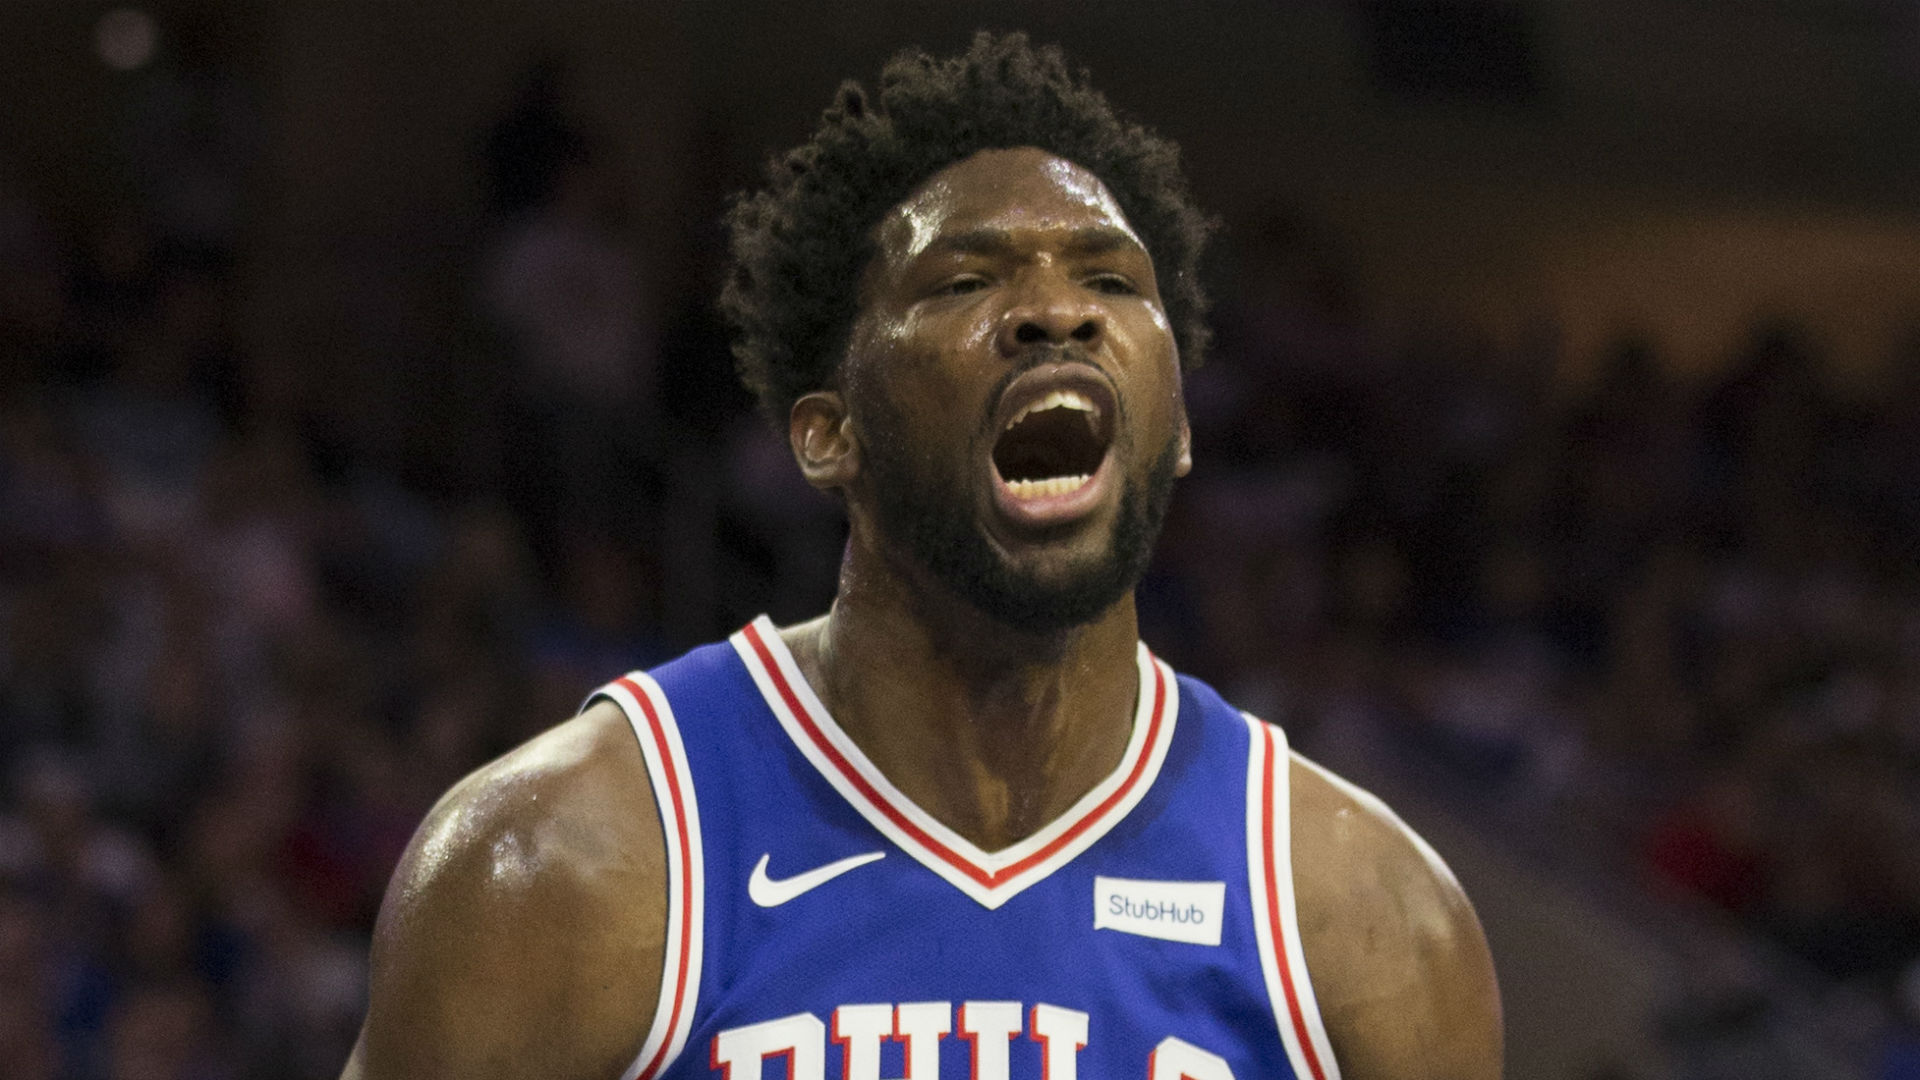 Joel Embiid: They call me 'Clutch' for a reason